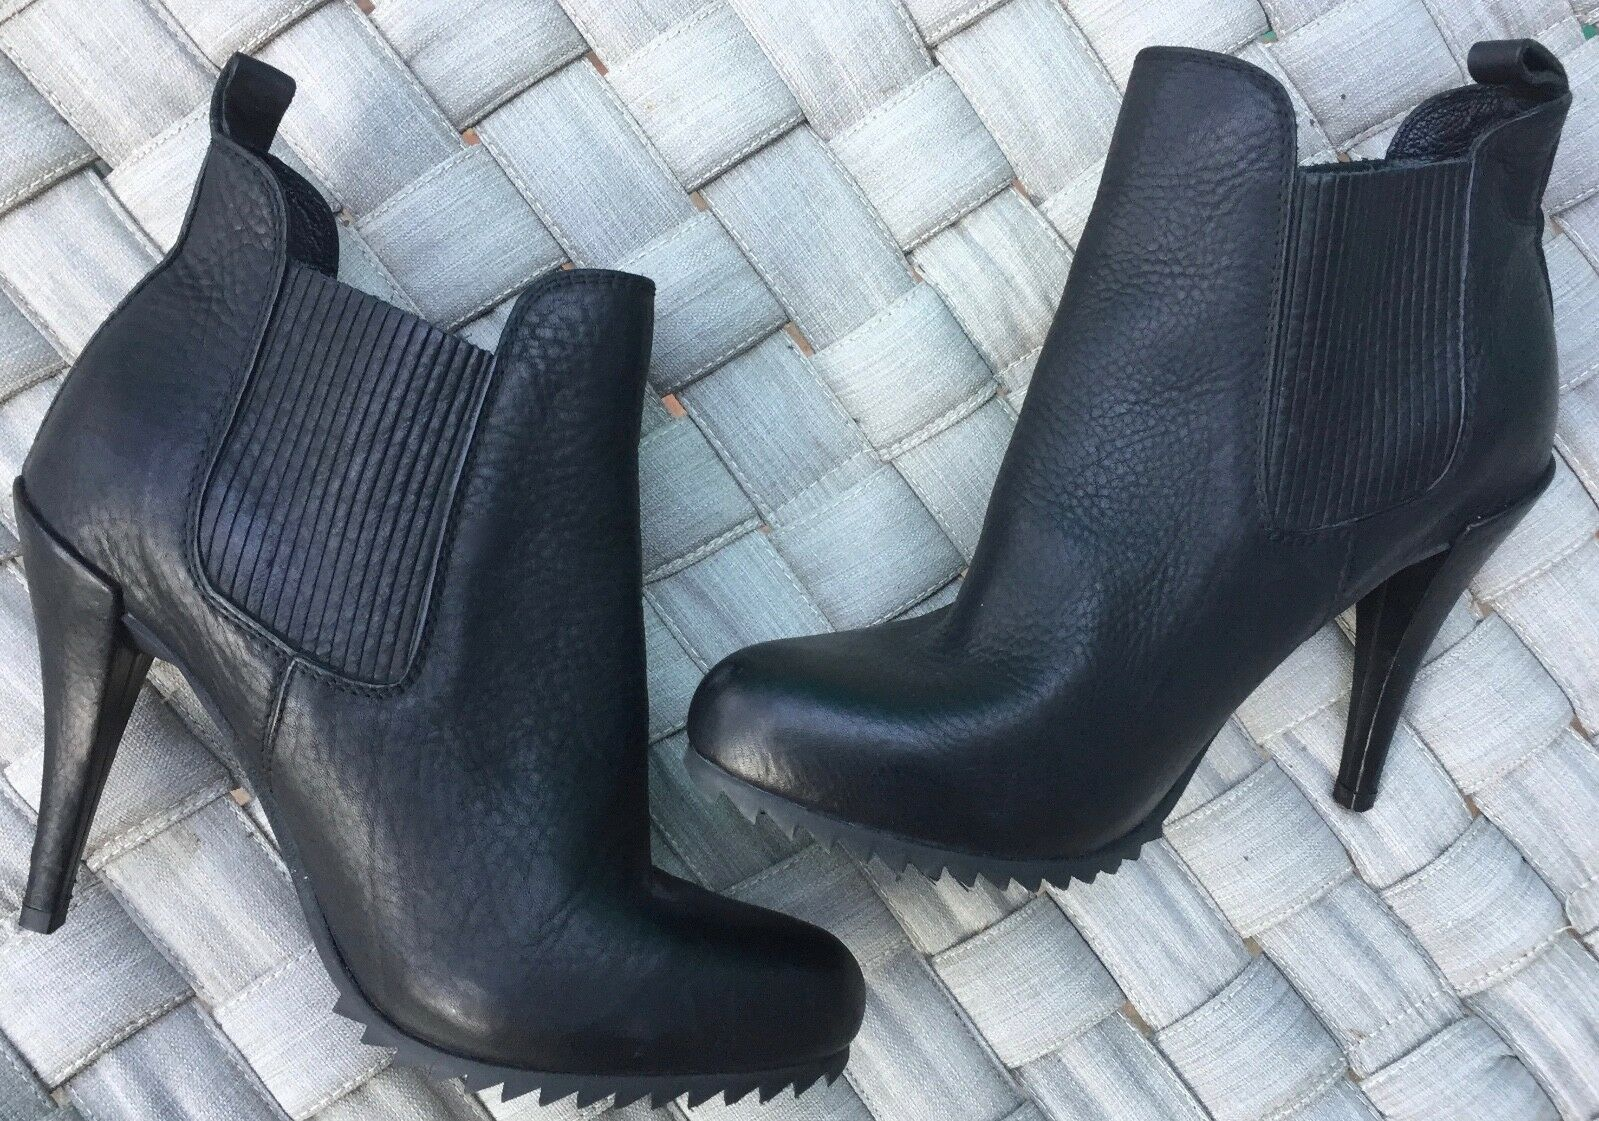 595 PEDRO GARCIA Justine Ankle Boots US 10.5 Chelsea black leather